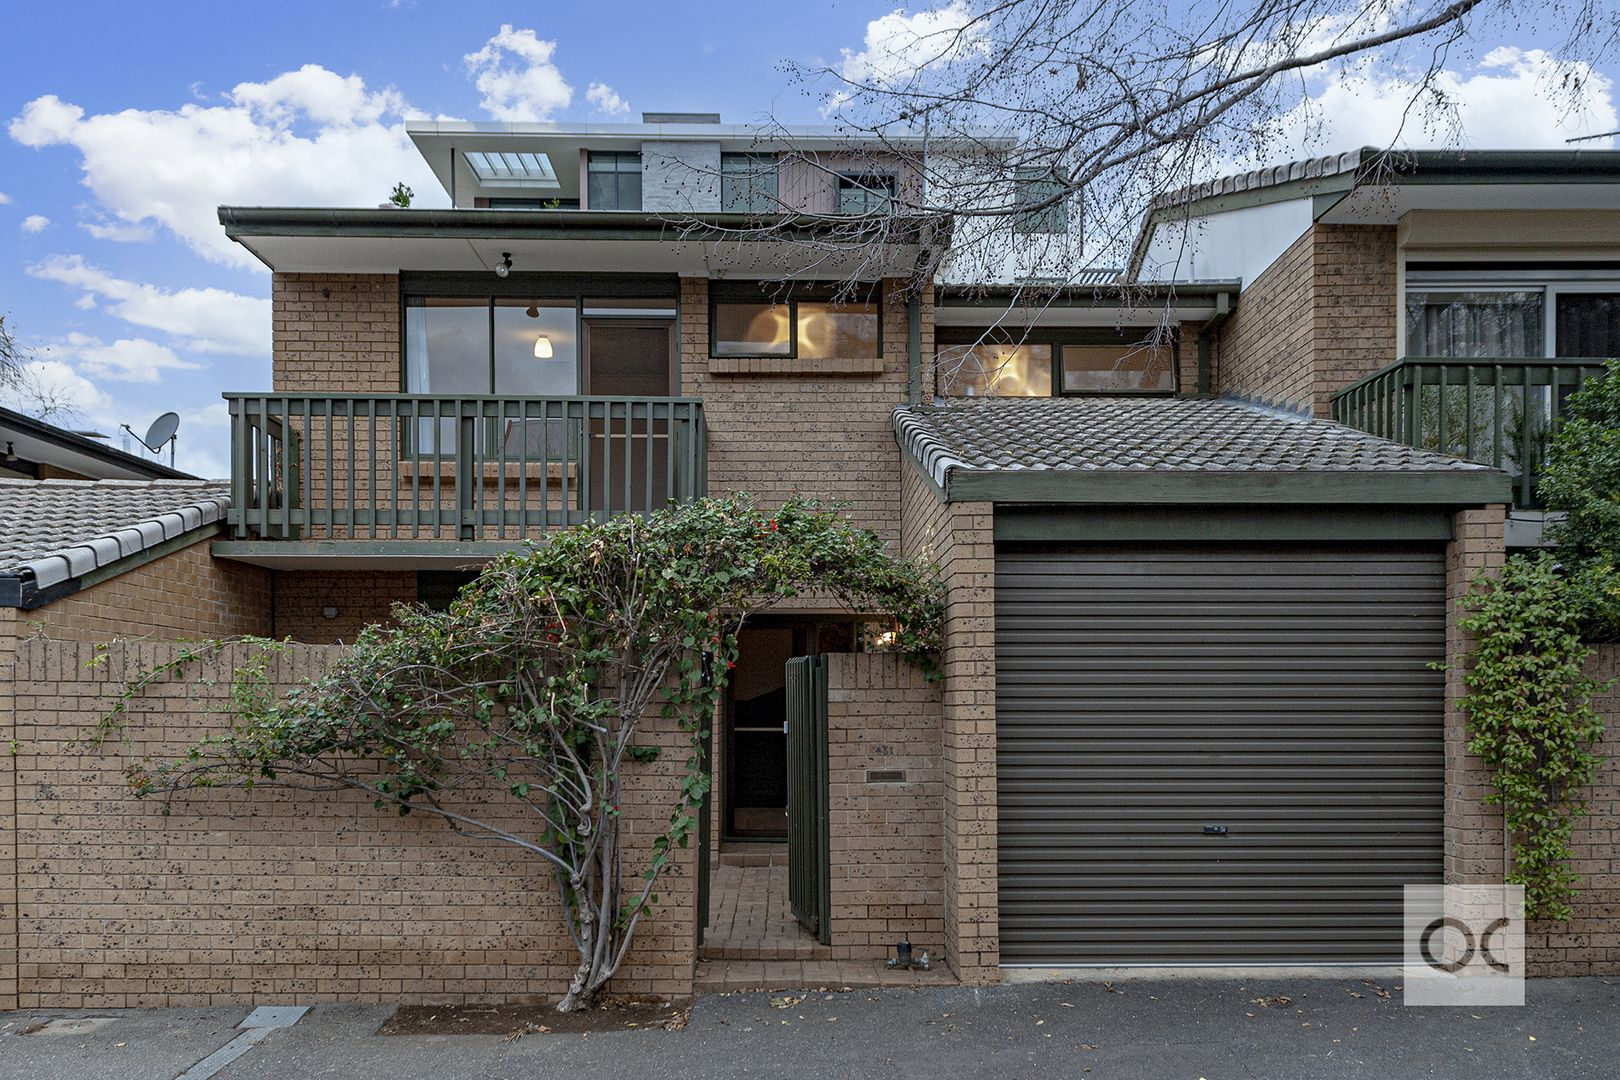 3 bedrooms House in 431 Carrington  Street ADELAIDE SA, 5000